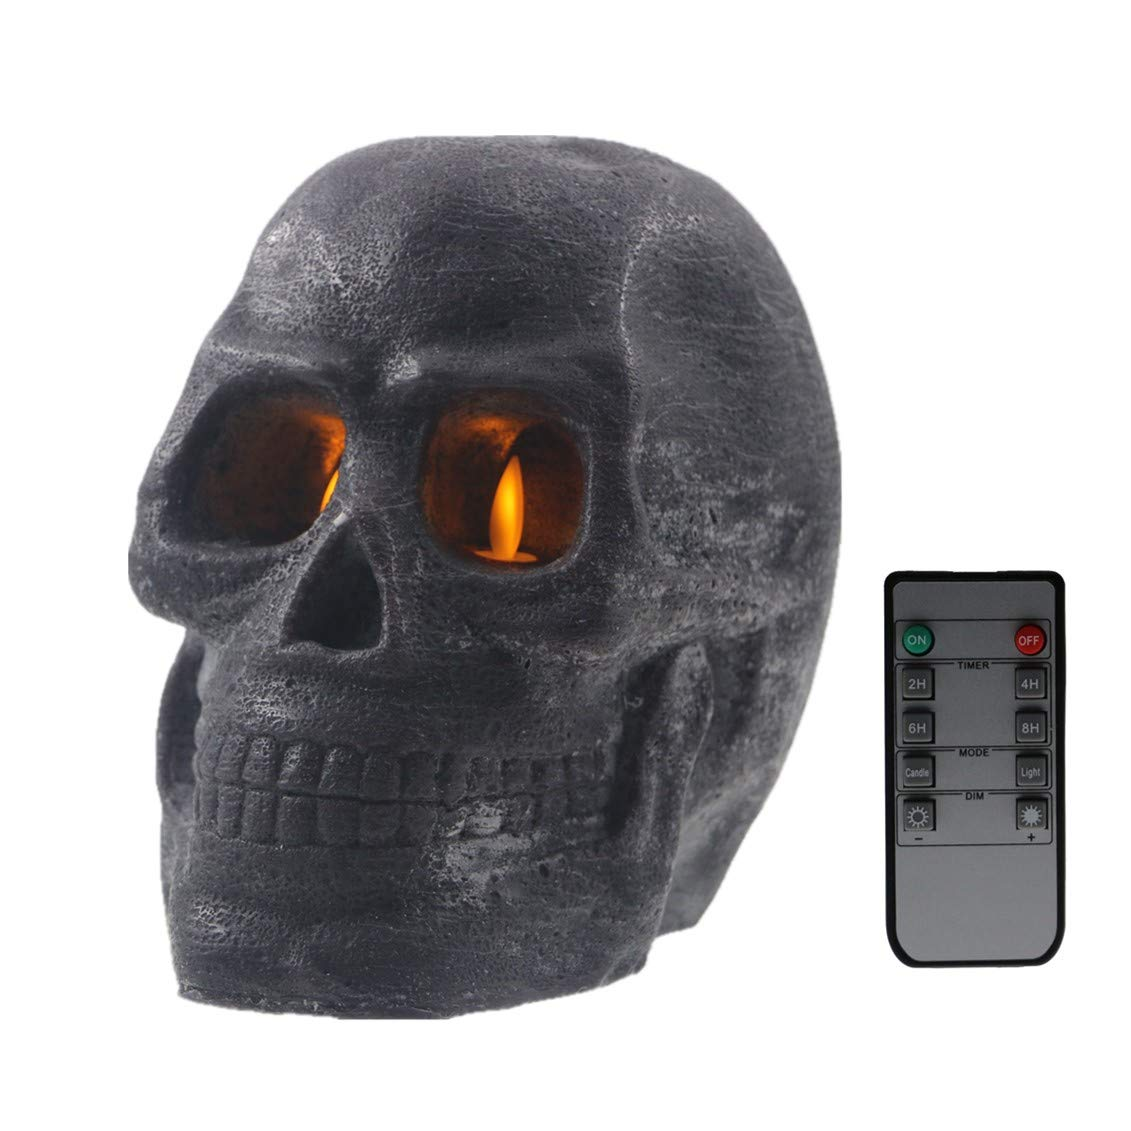 Kitch Aroma Real Wax Figural Skull Flameless Candles,Halloween LED Candles (Black) by Kitch Aroma